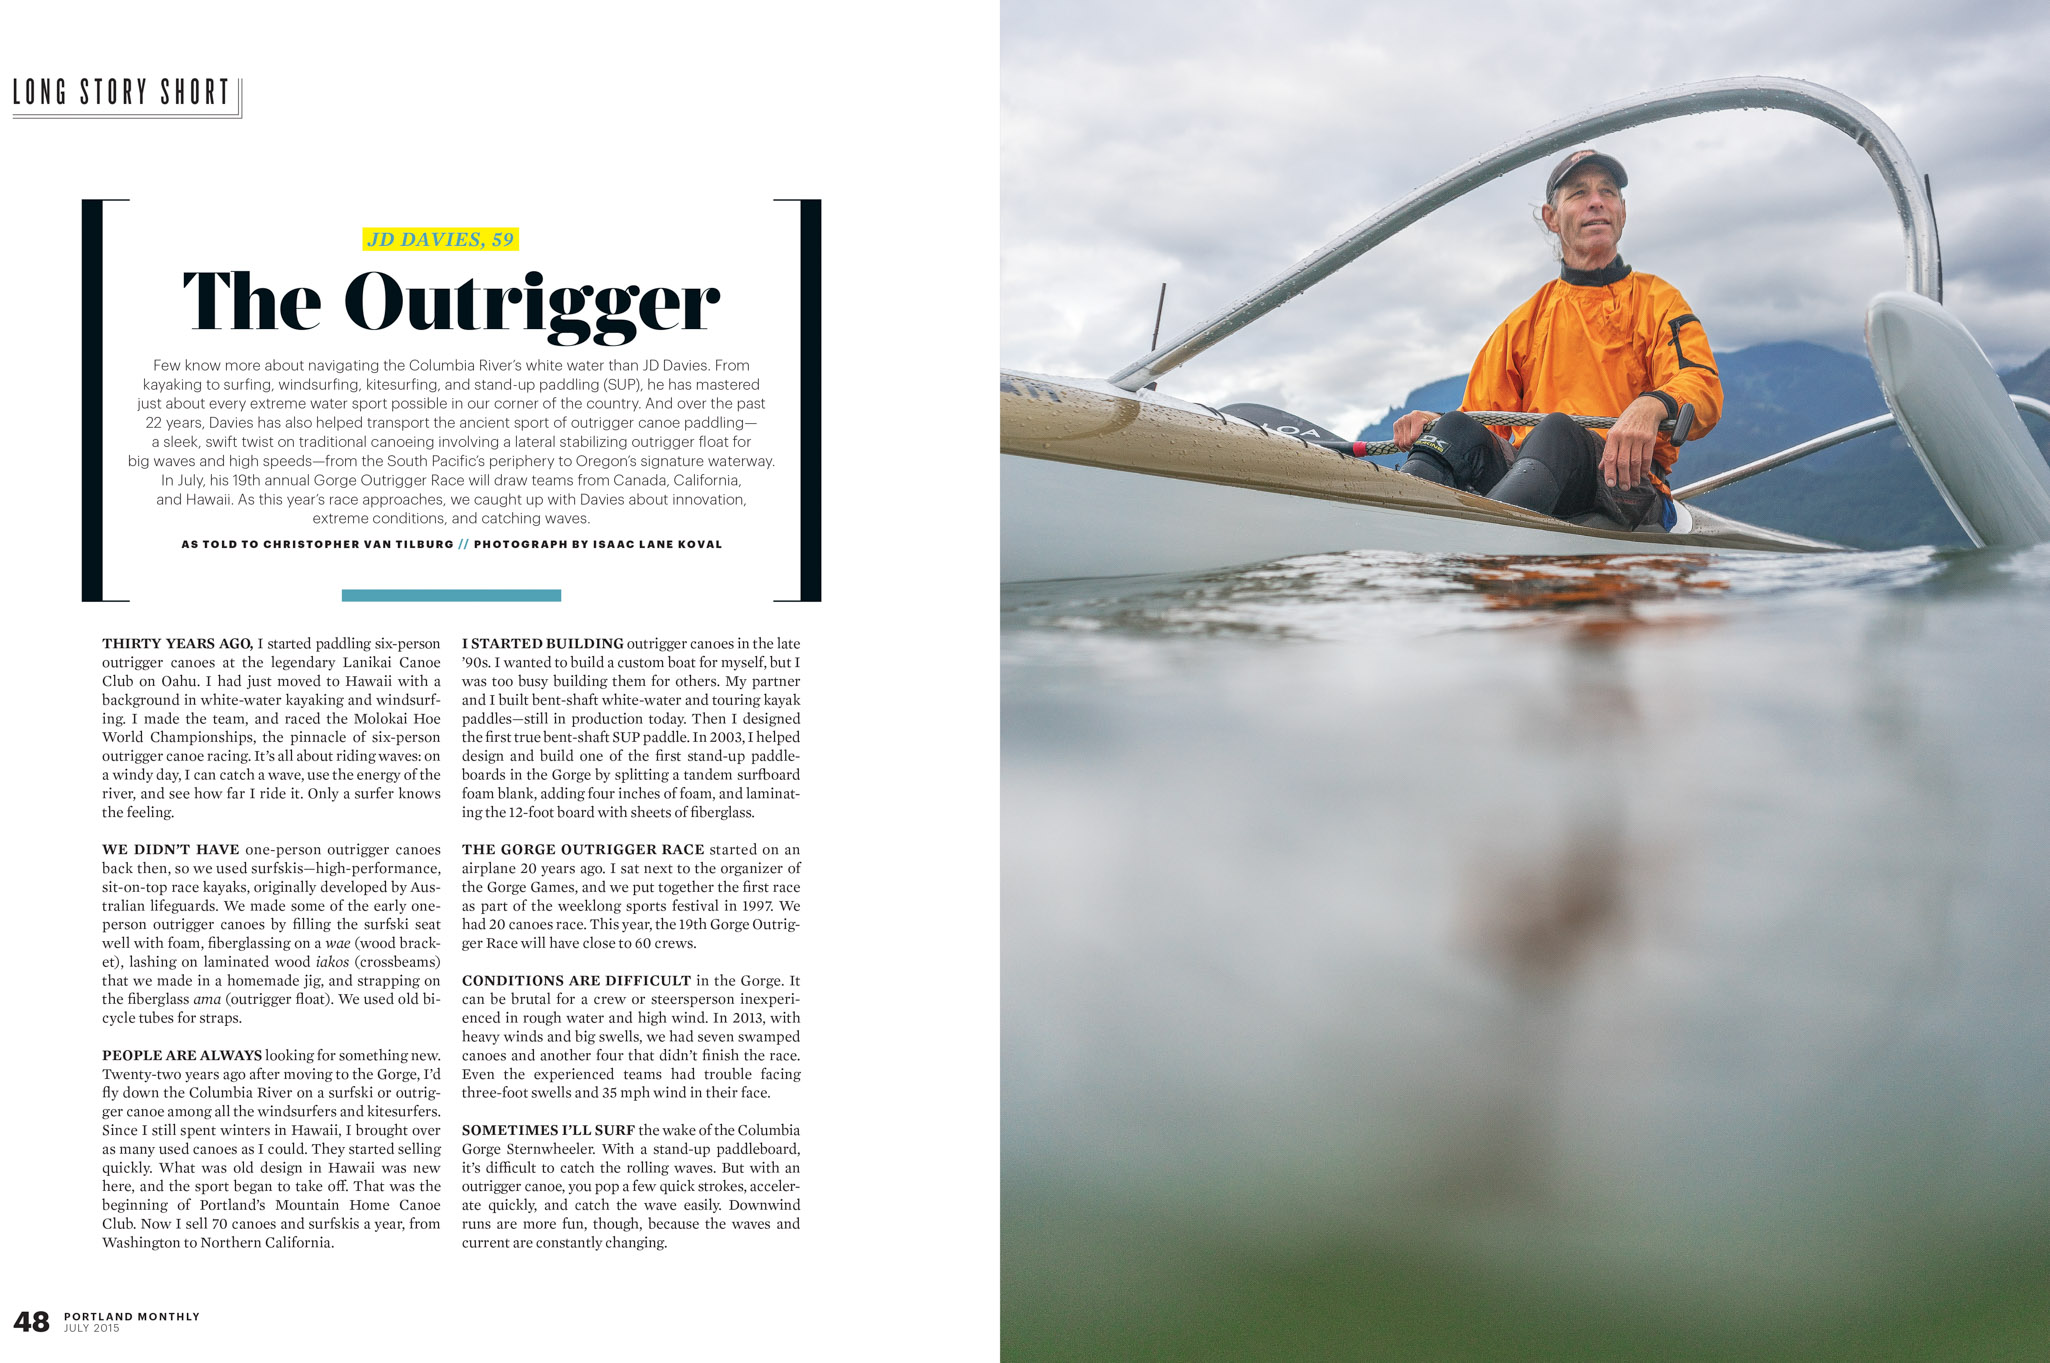 JD Davies of NW Outrigger in a Outrigger Canoe